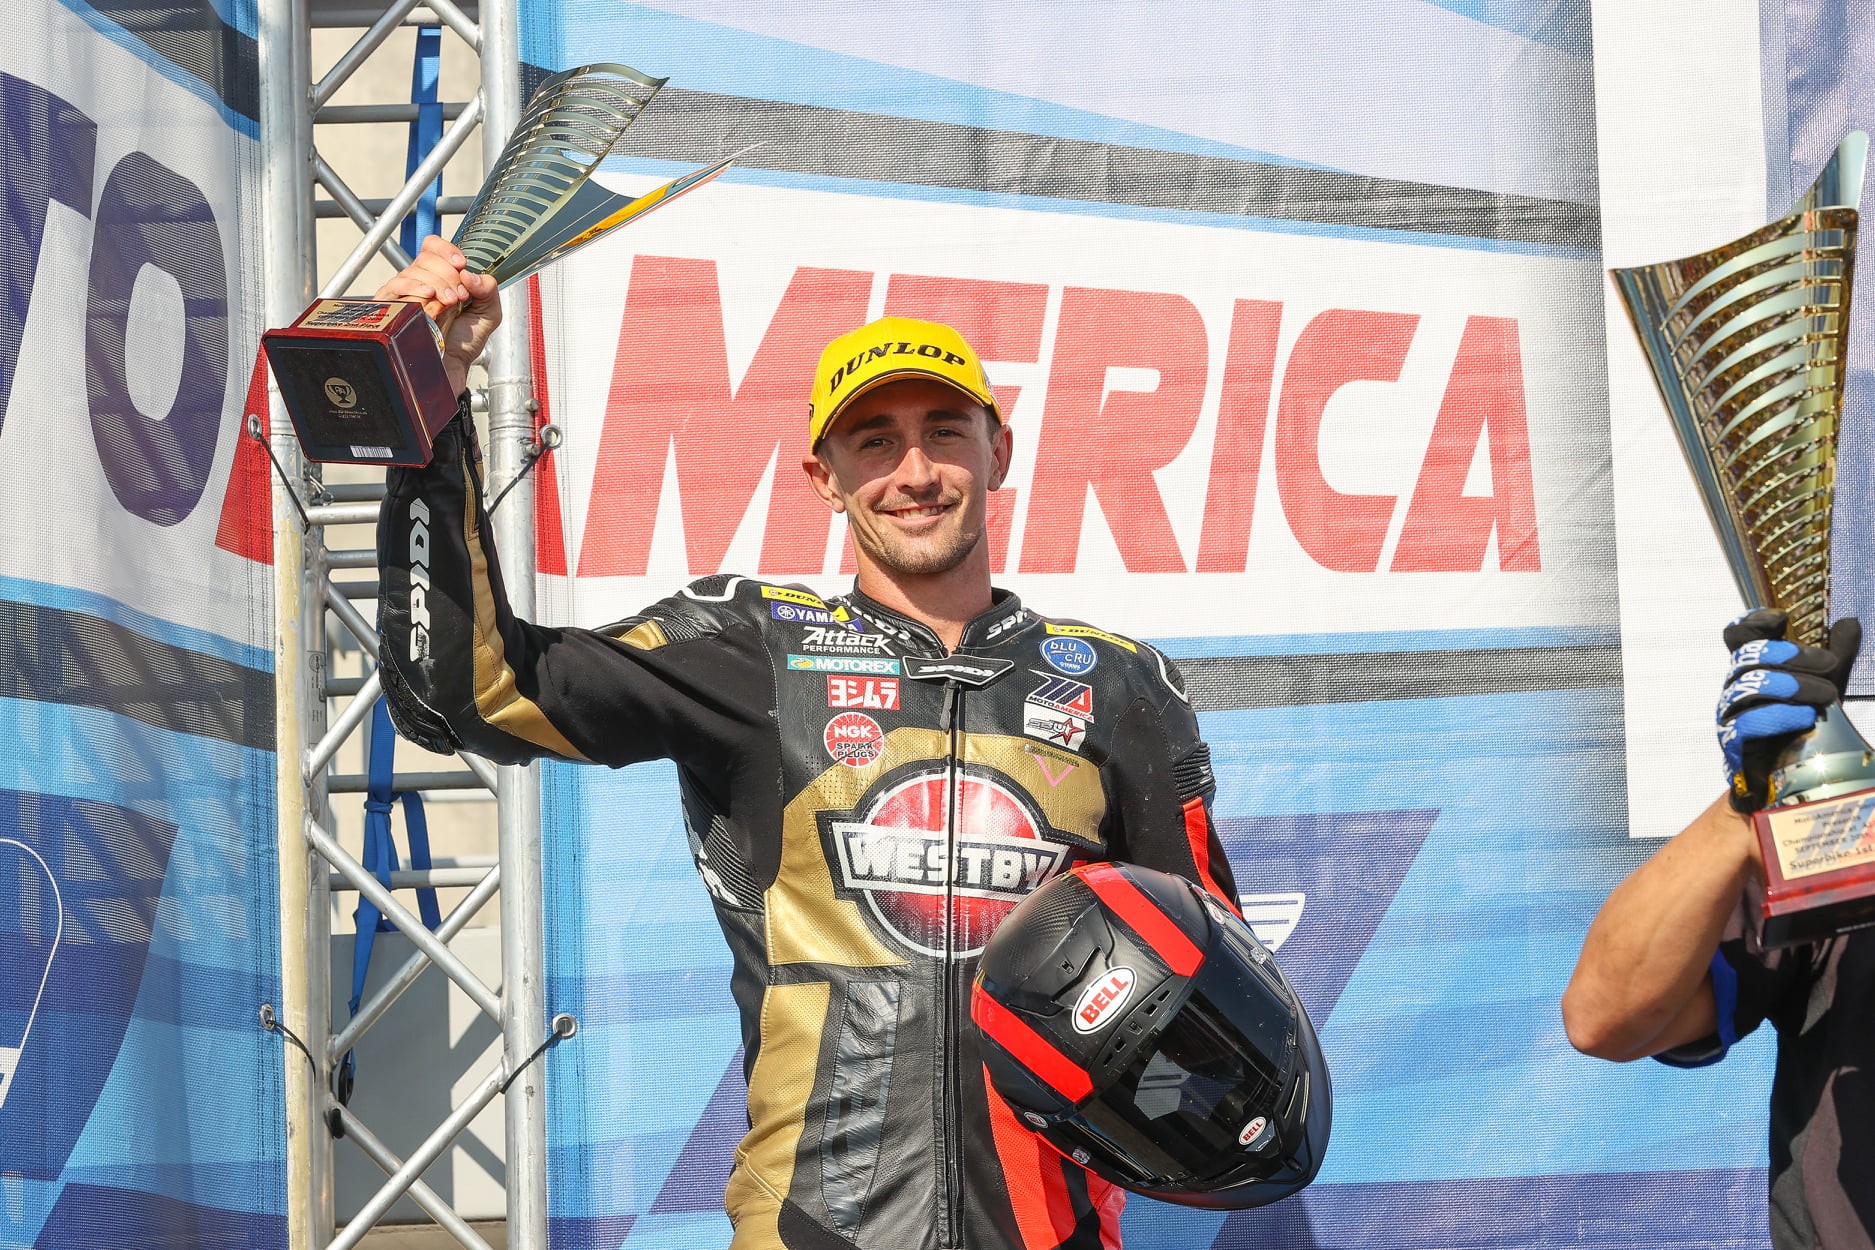 Scholtz Double-Podiums In Superbike For Westby Racing; Wyman Gets Caught In Charlotte's Web In Junio